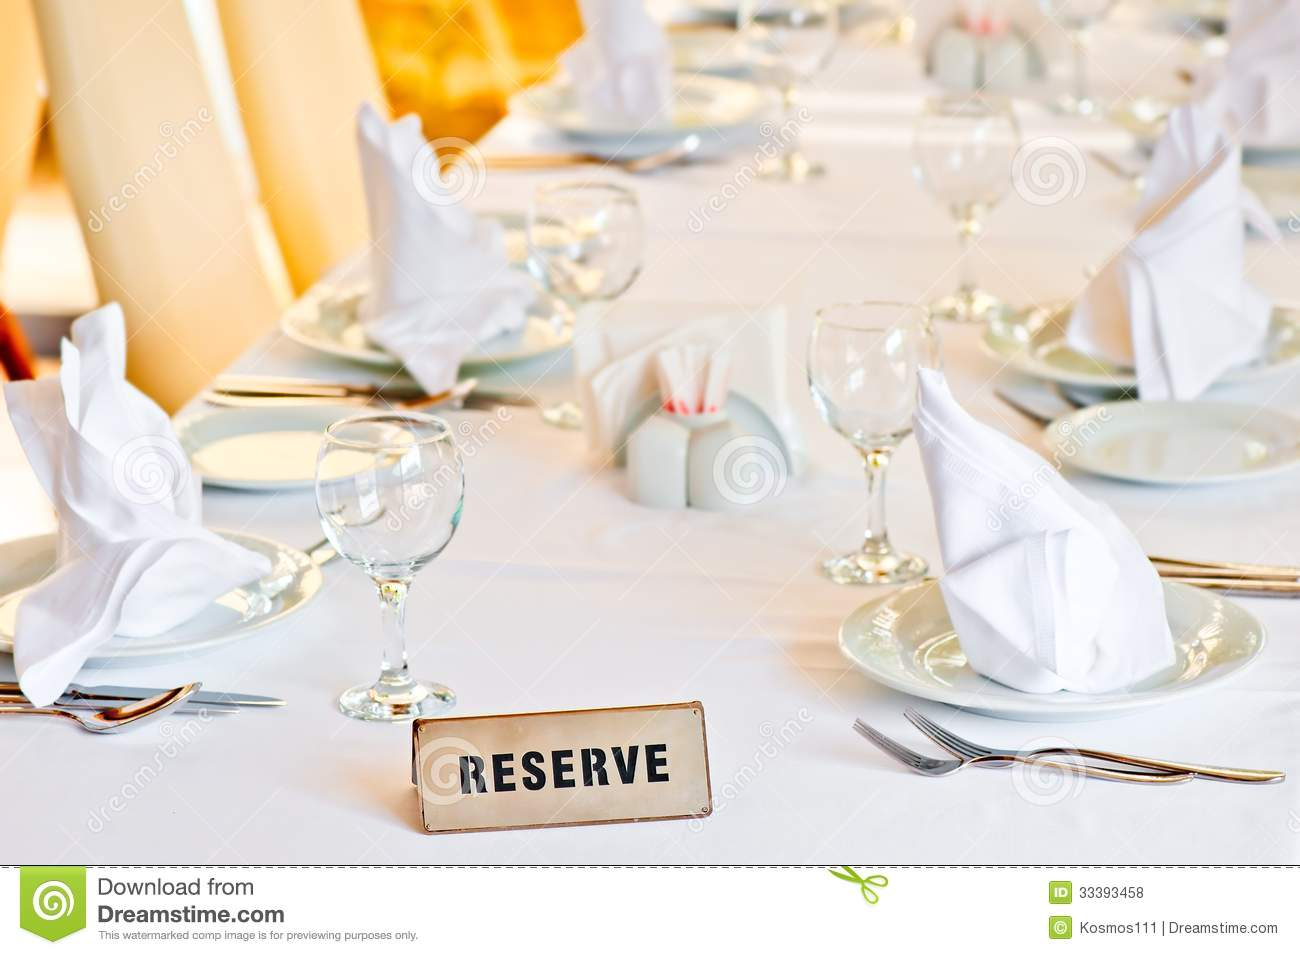 Indian restaurant kitchen design - For Guests Of Restaurant Royalty Free Stock Photos Image 33393458